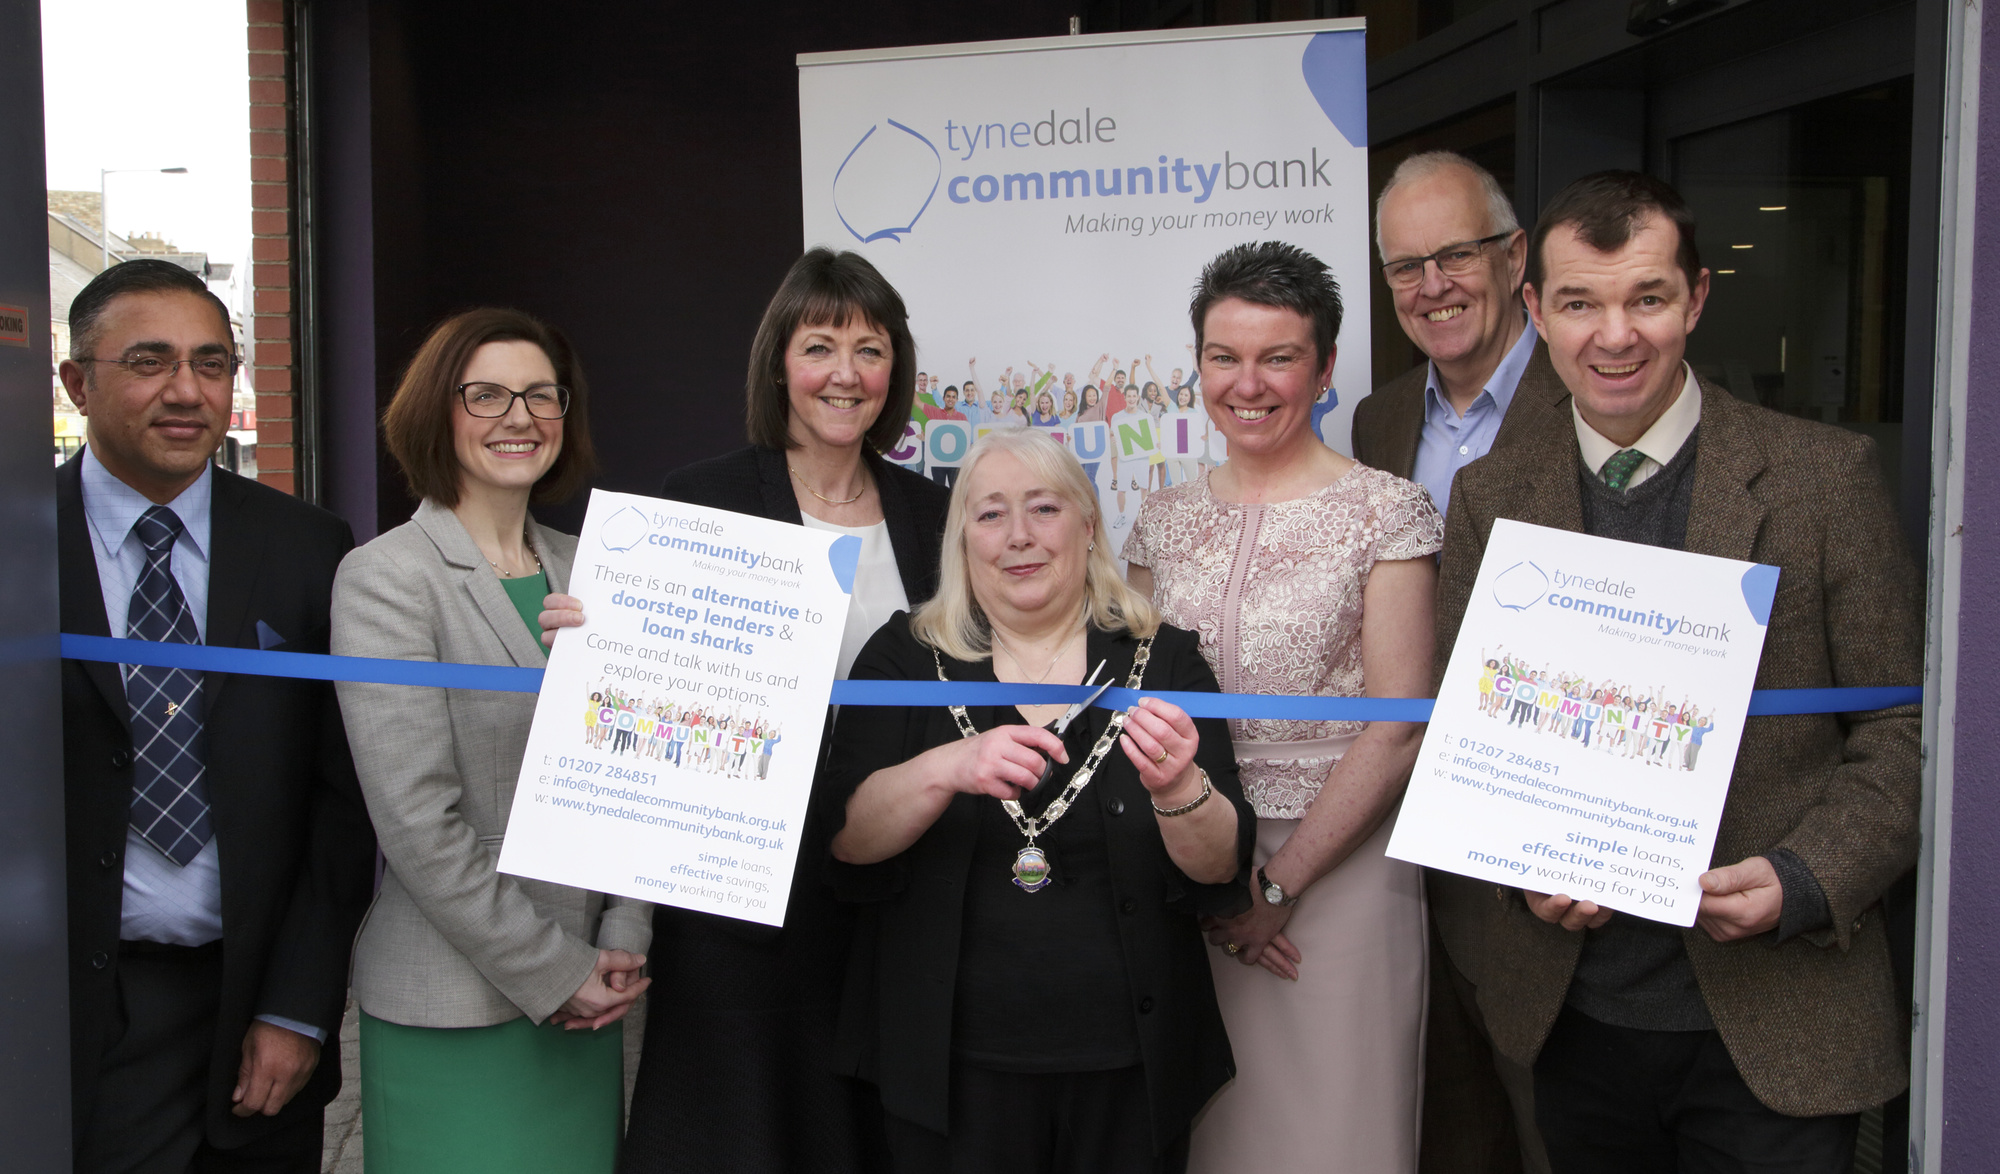 Tynedale Community Bank open day